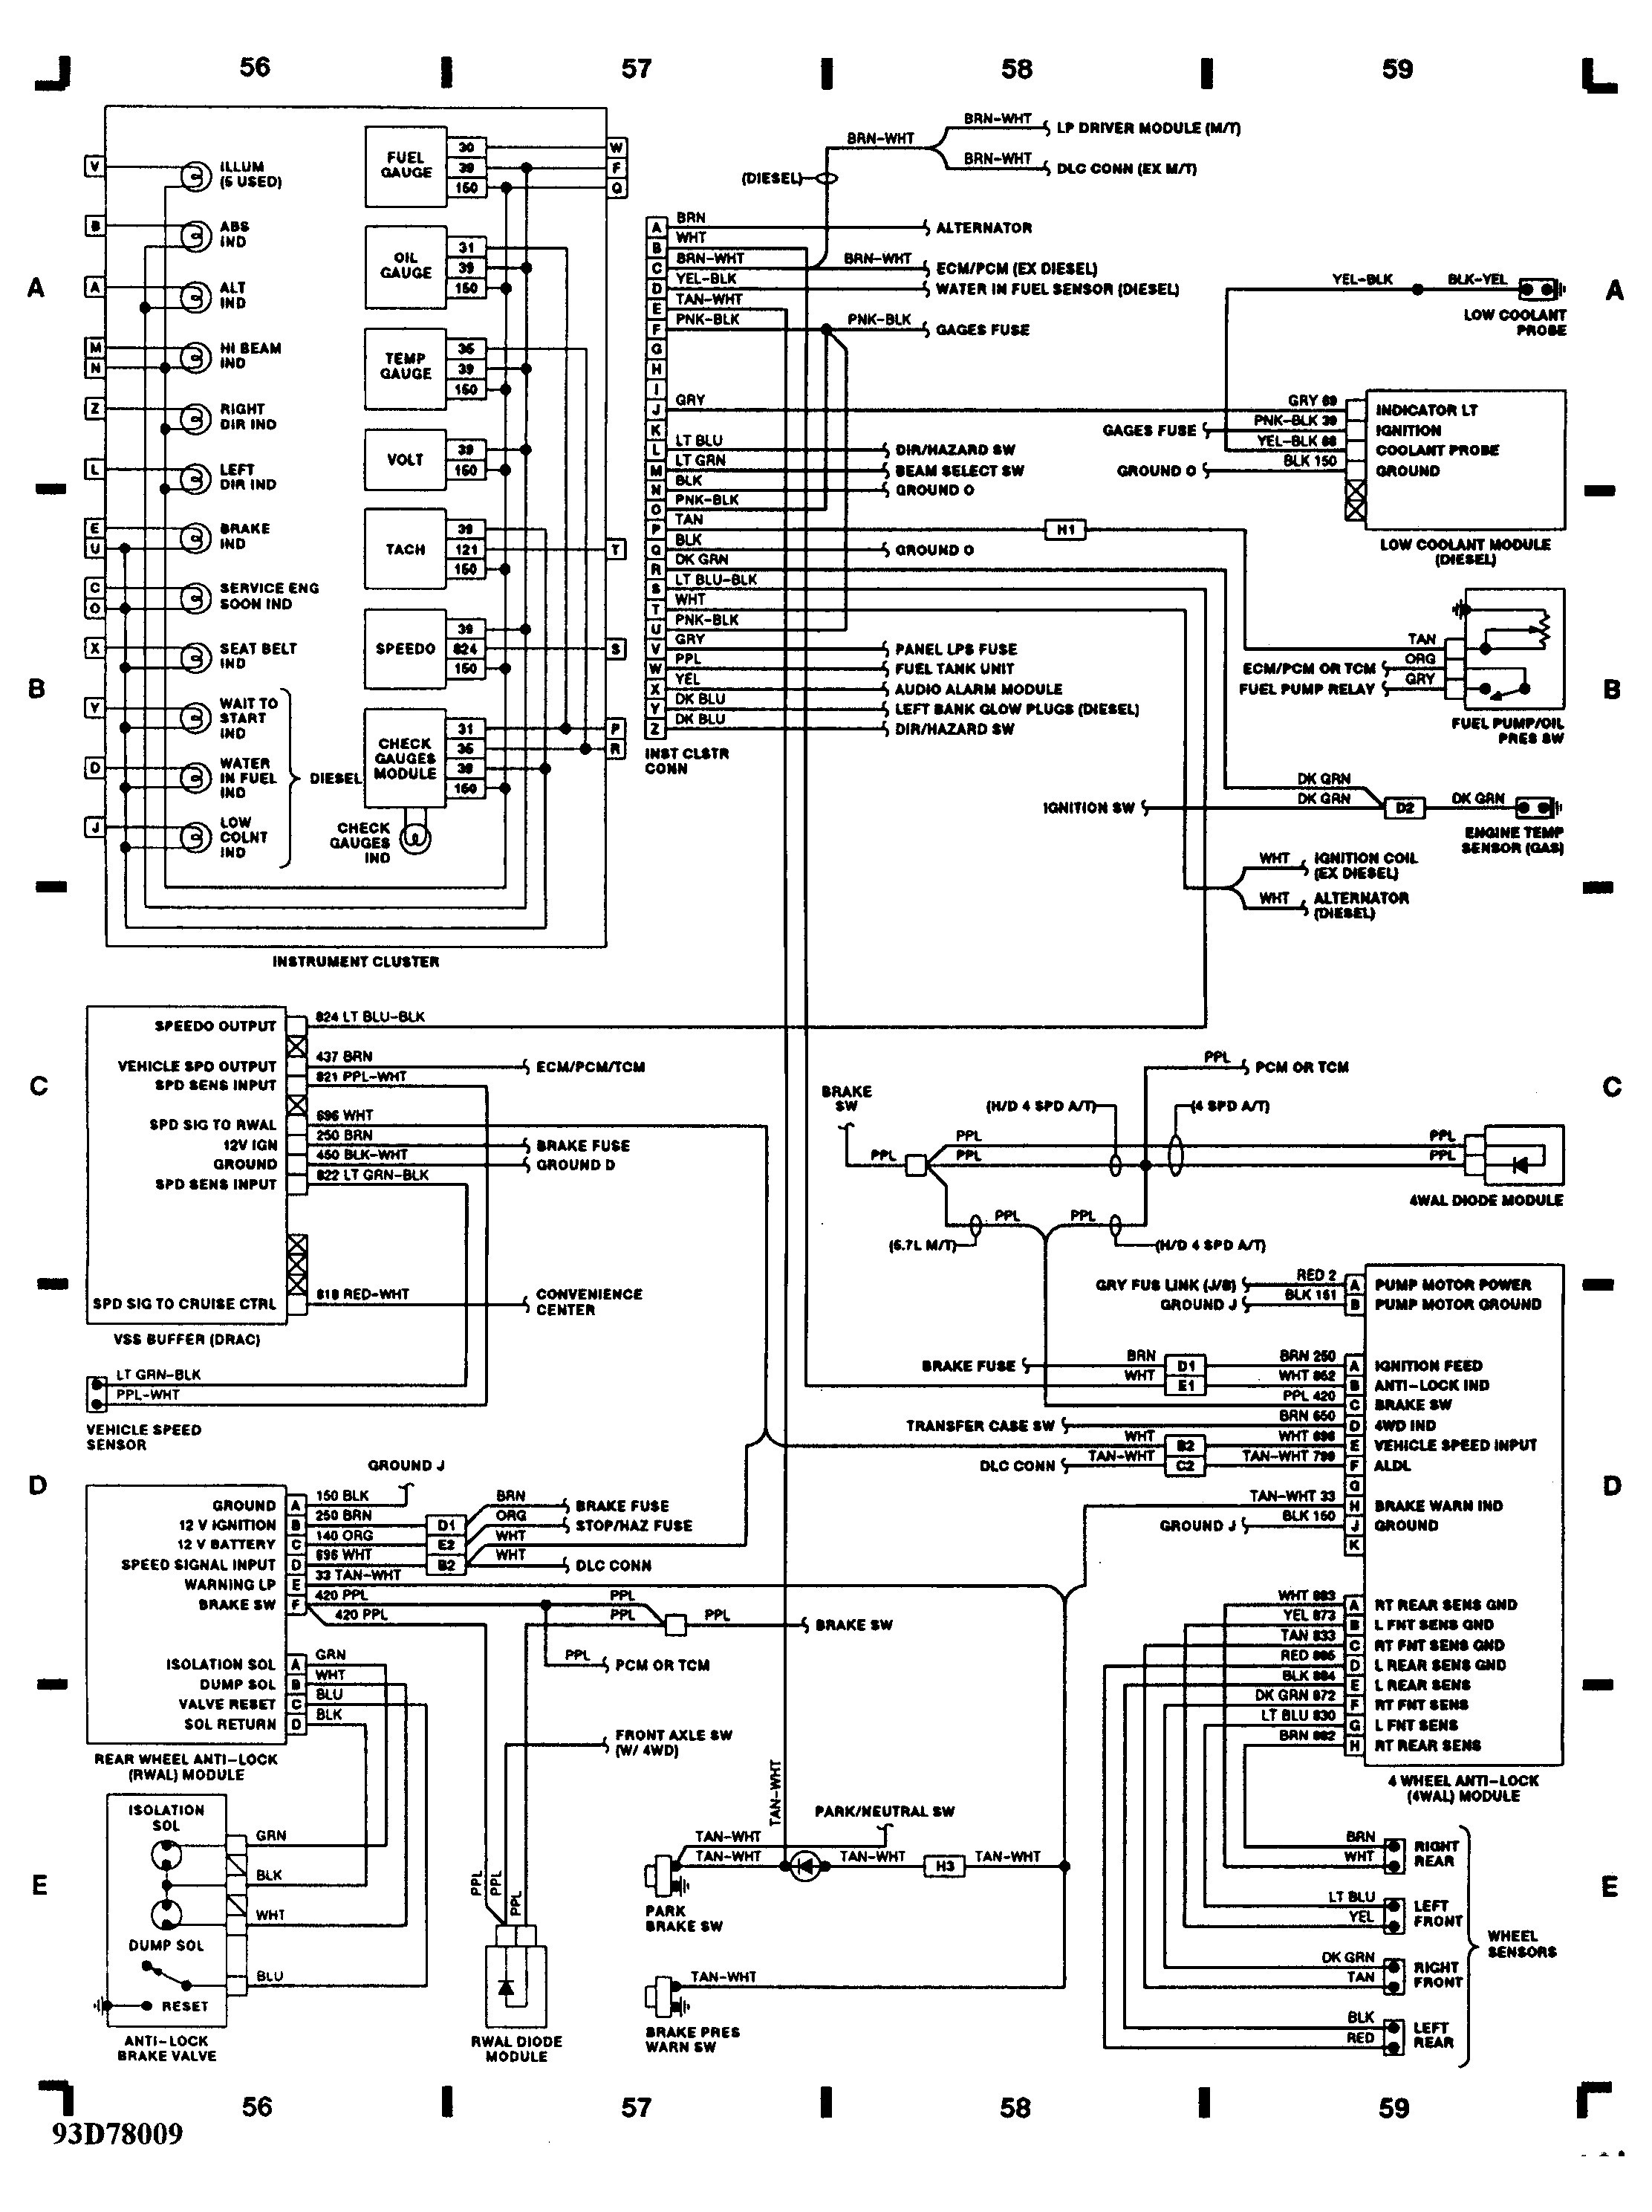 1999 Chevy Tahoe Engine Diagram 5 7 Vortec Wiring Diagram 4 3l Vortec Engine Diagram Wiring Diagrams